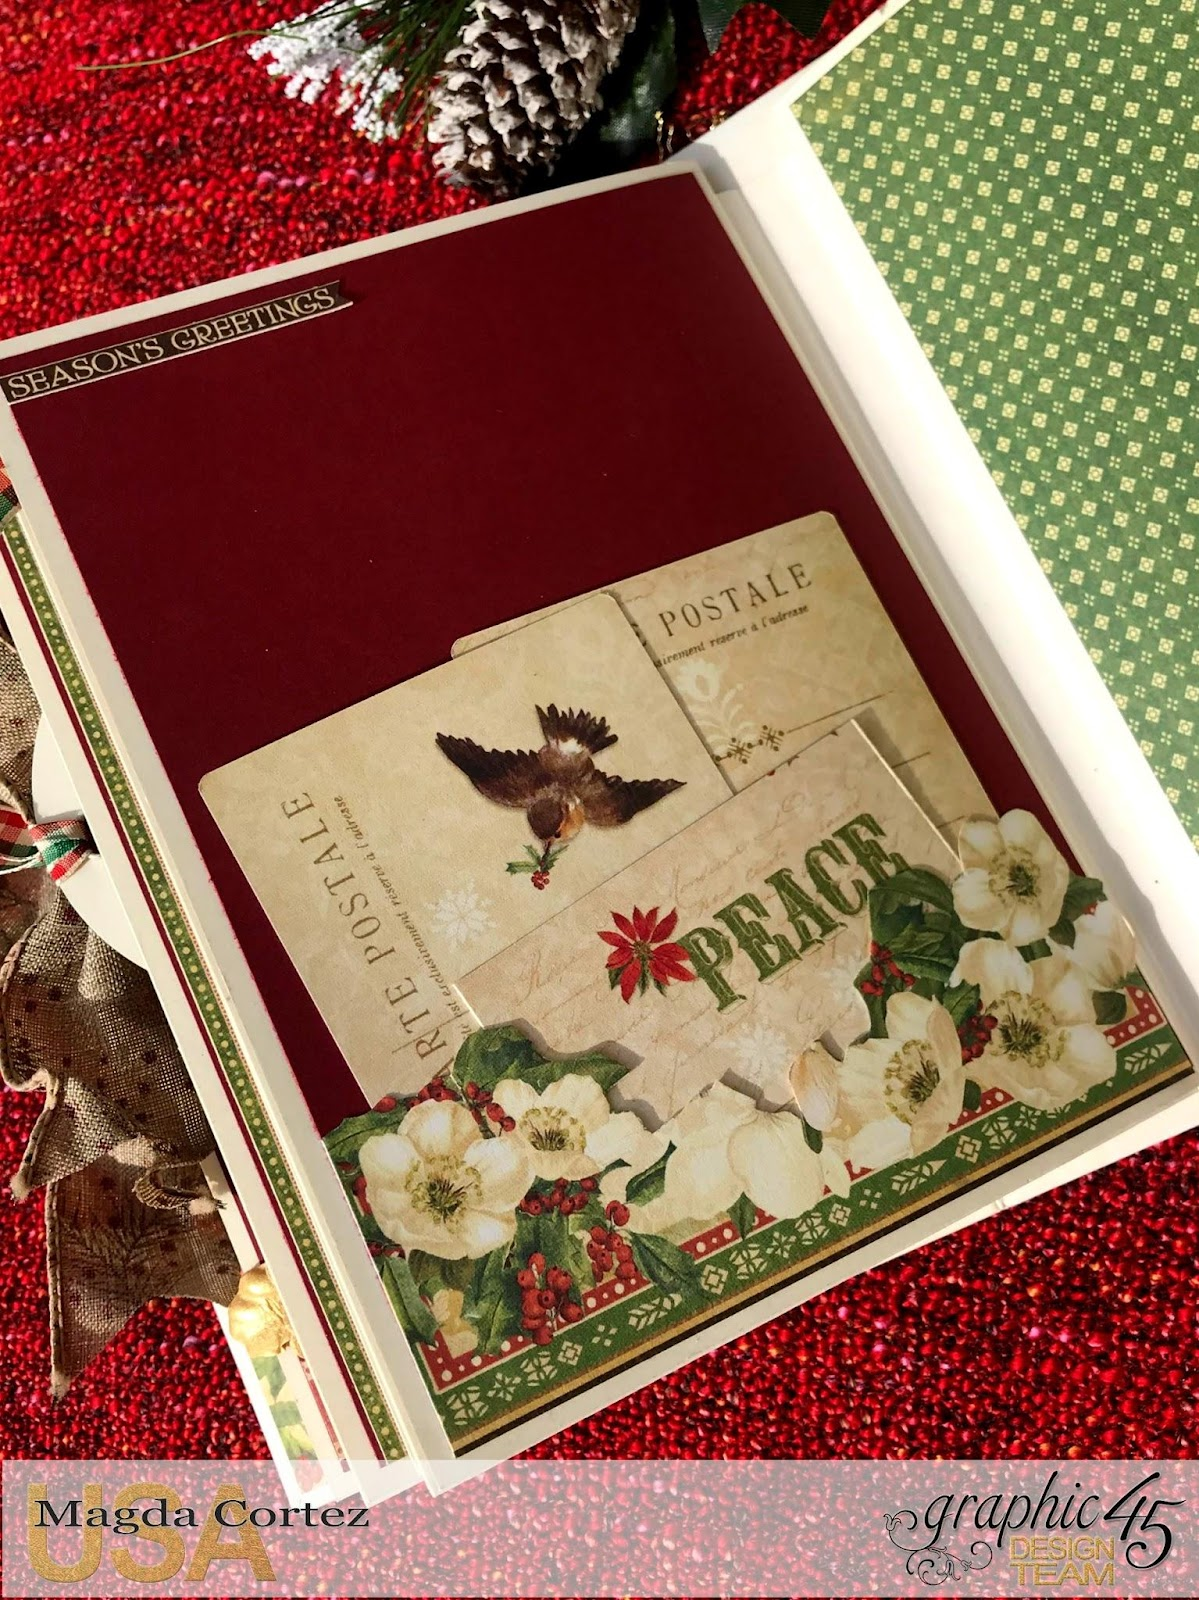 Believe Mini Album,Winter Wonderland By Magda Cortez, Product by Graphic 45, Photo 09 of 11 .jpg